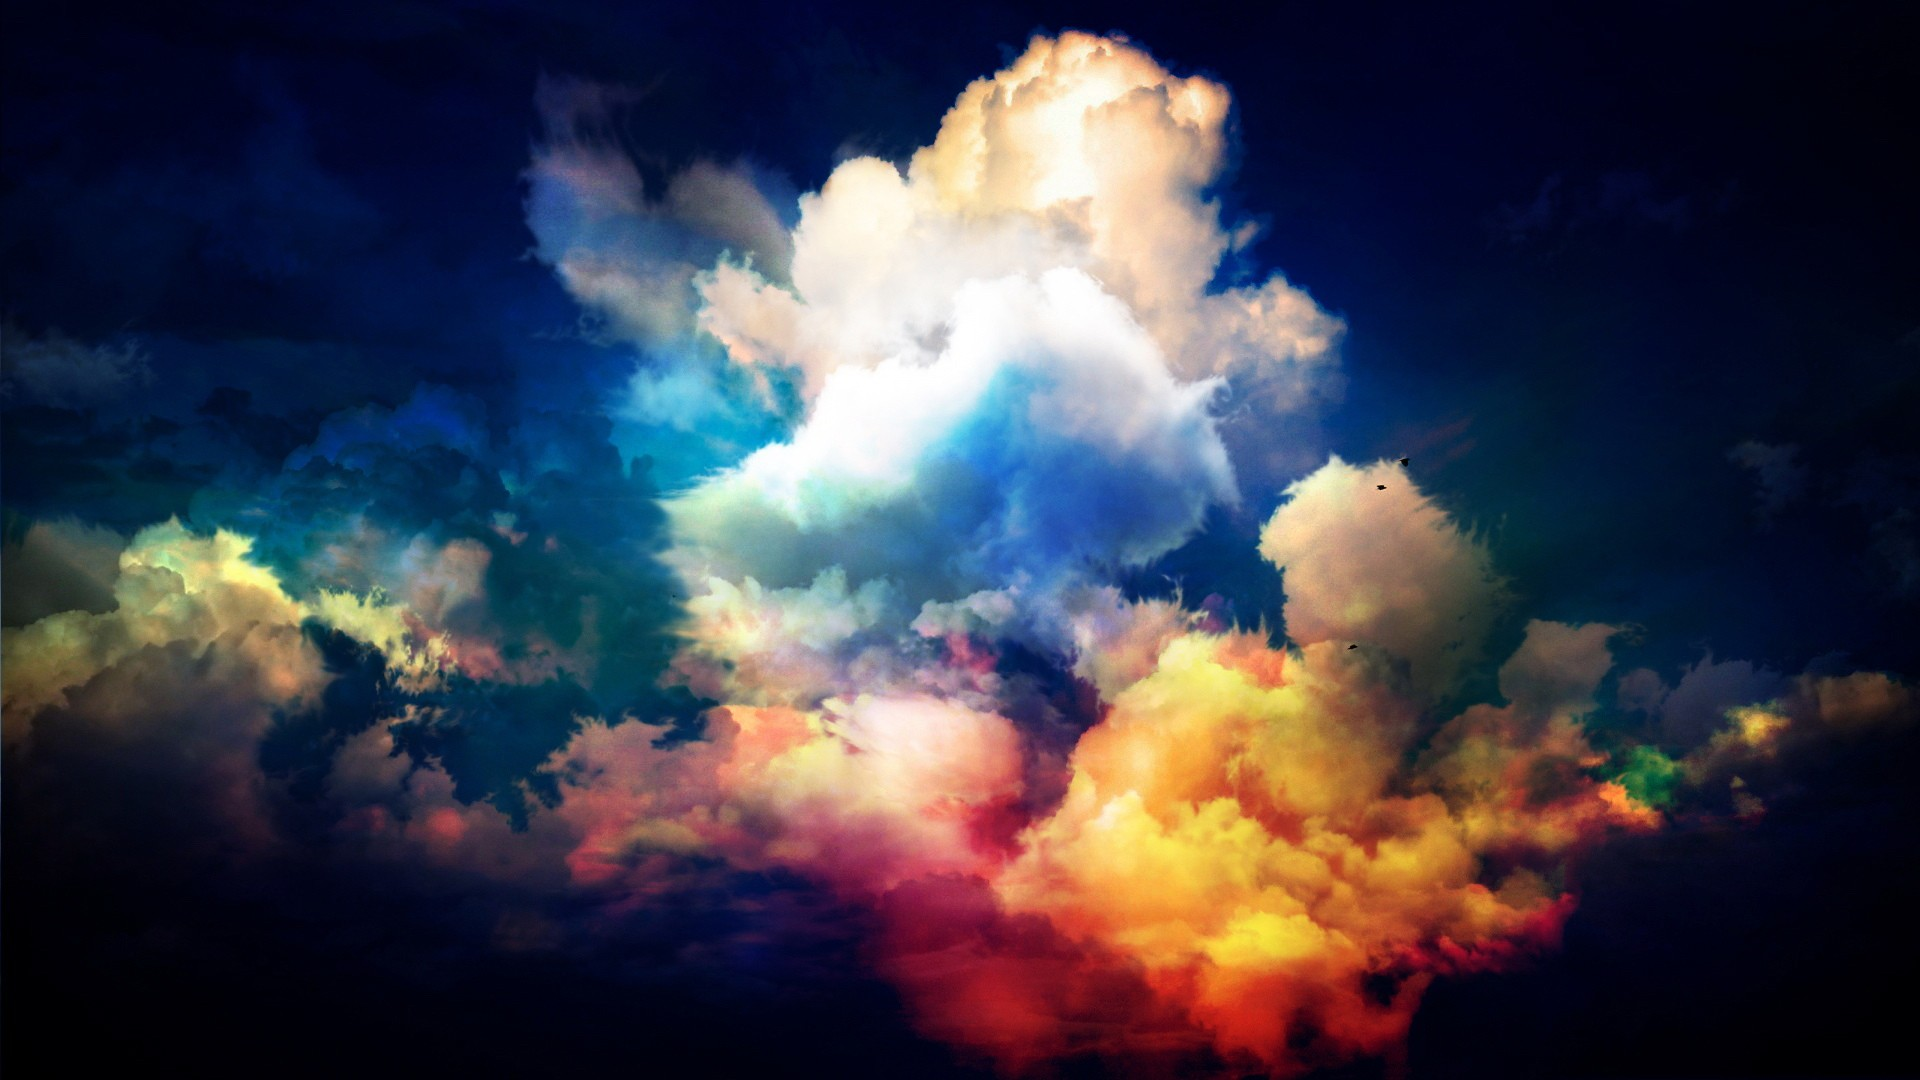 Colourful Fantasy Cloud Backgrounds: Clouds Photo Manipulation Wallpaper